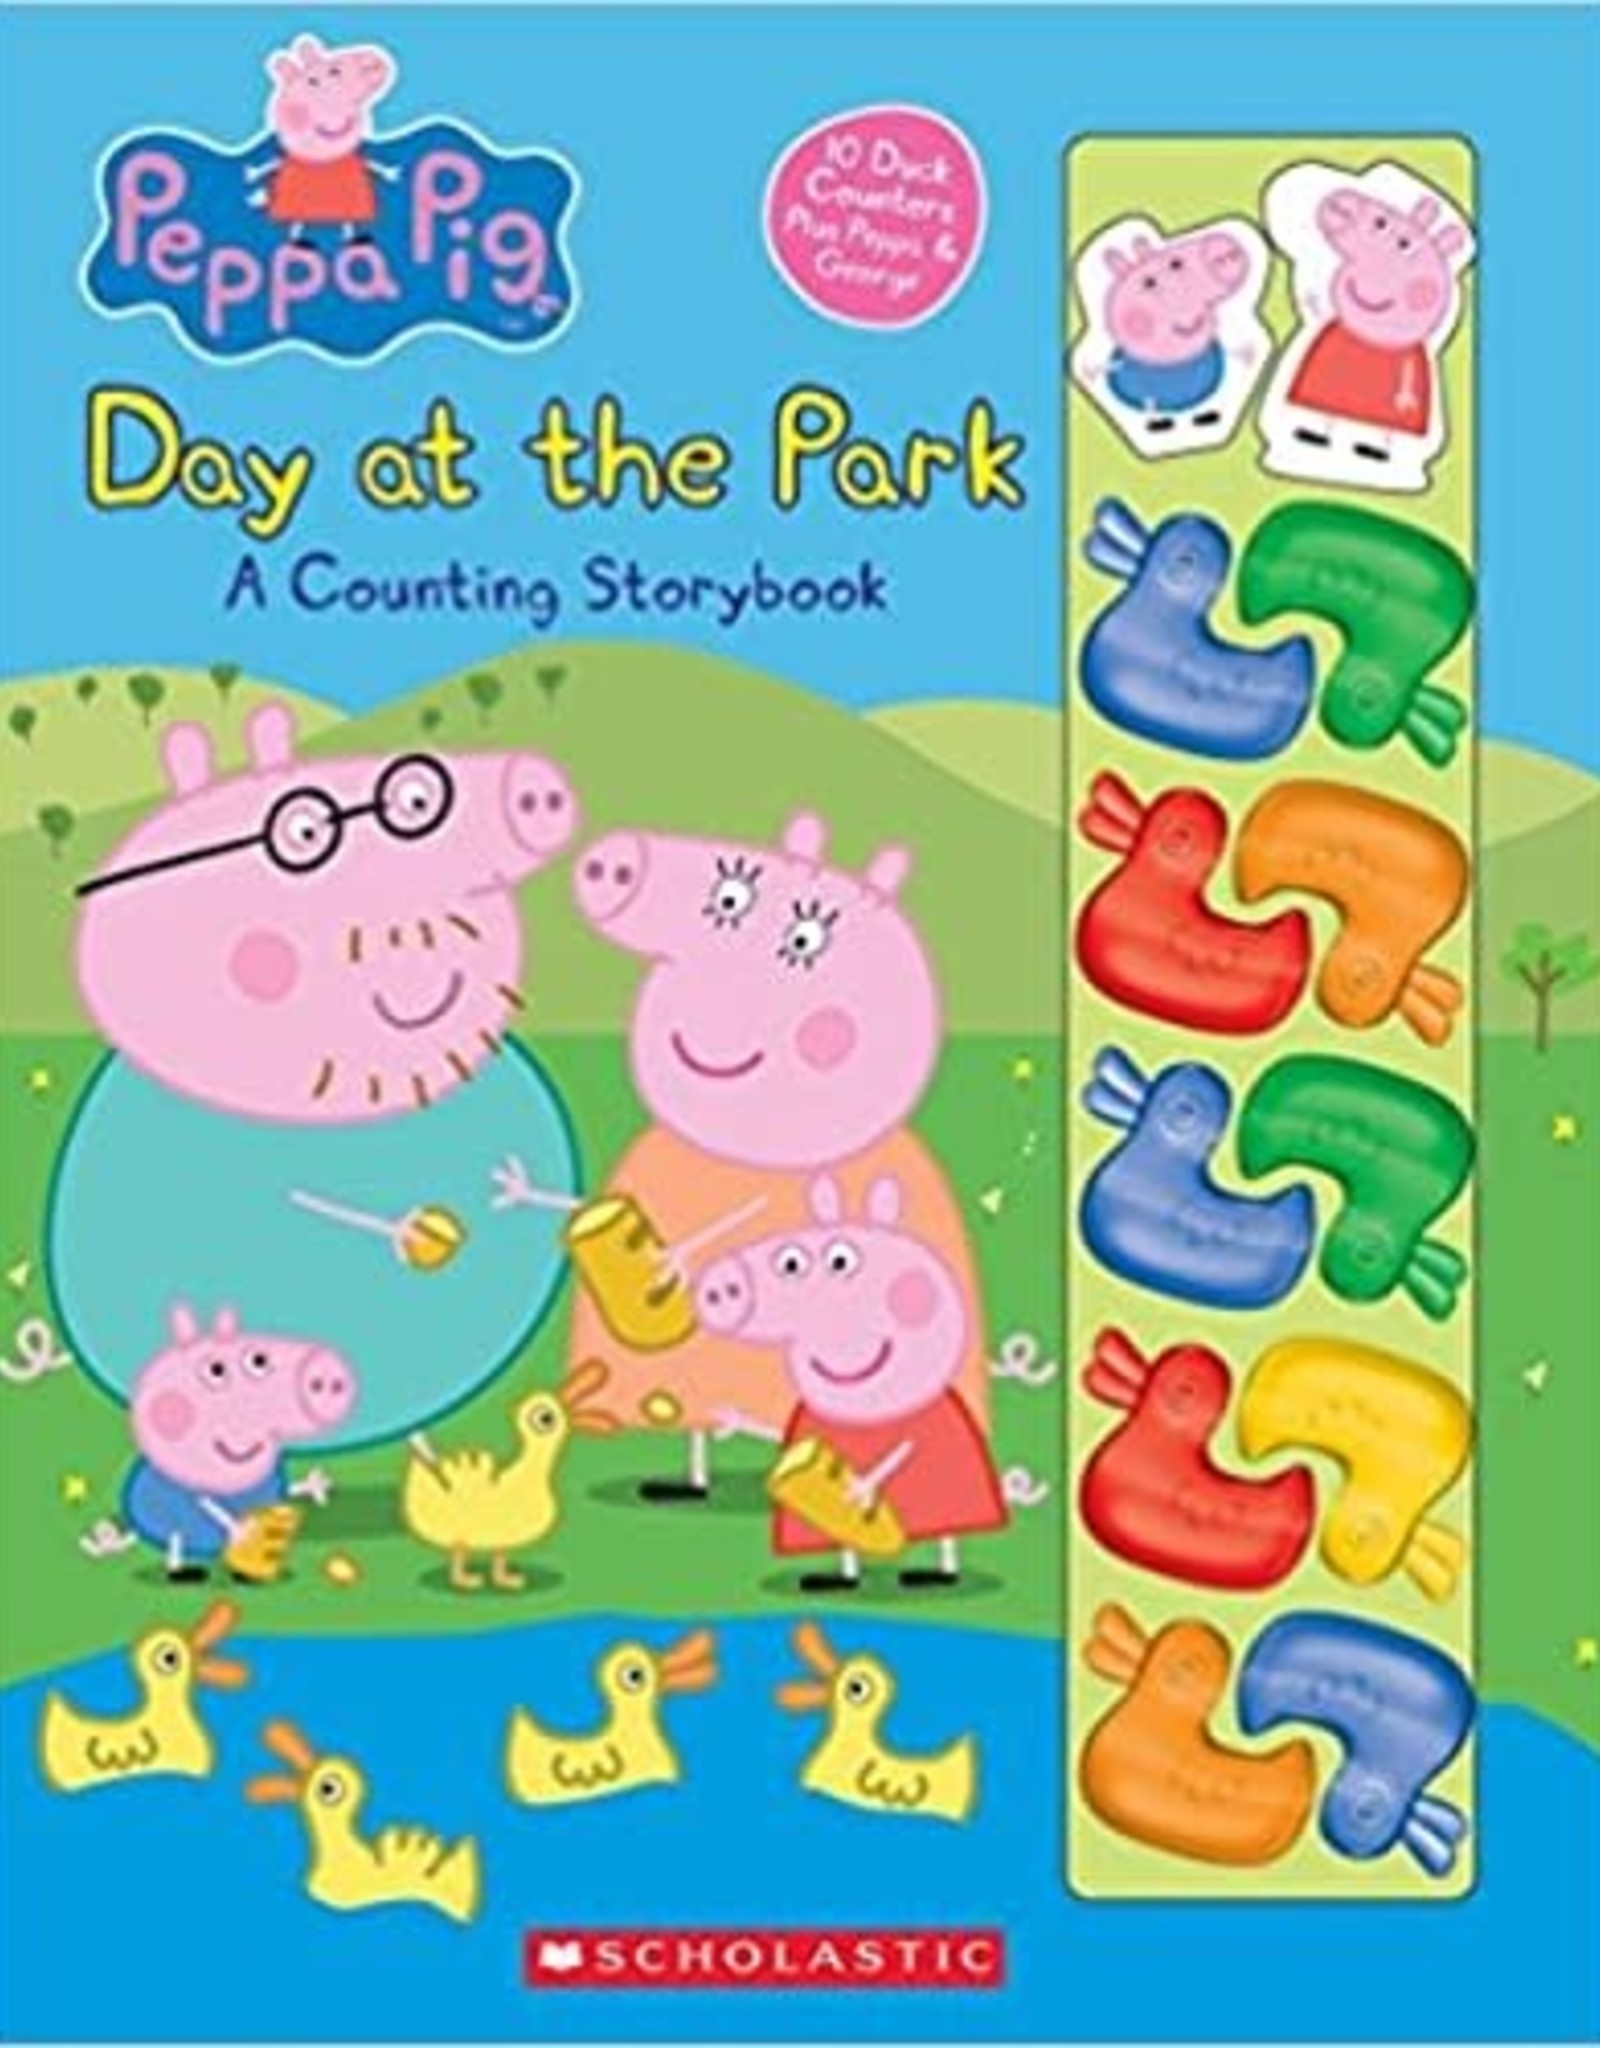 Scholastic Peppa Pig Day At The Park